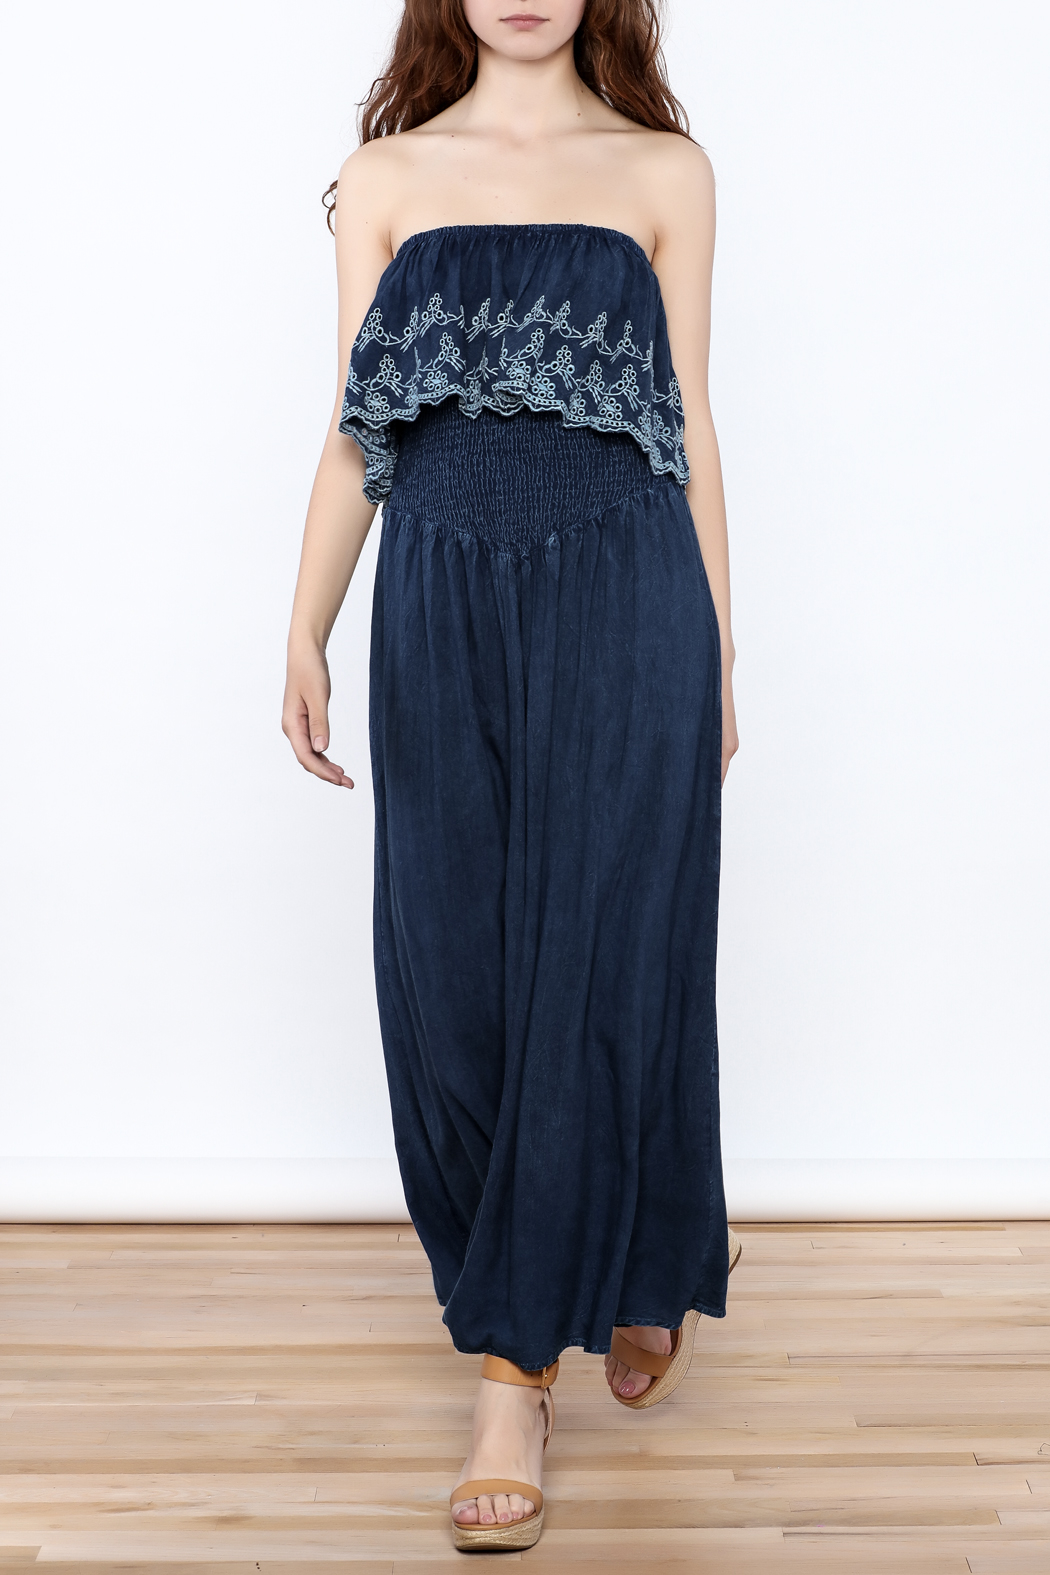 Elan Strapless Maxi Dress from Montclair by That Little ...